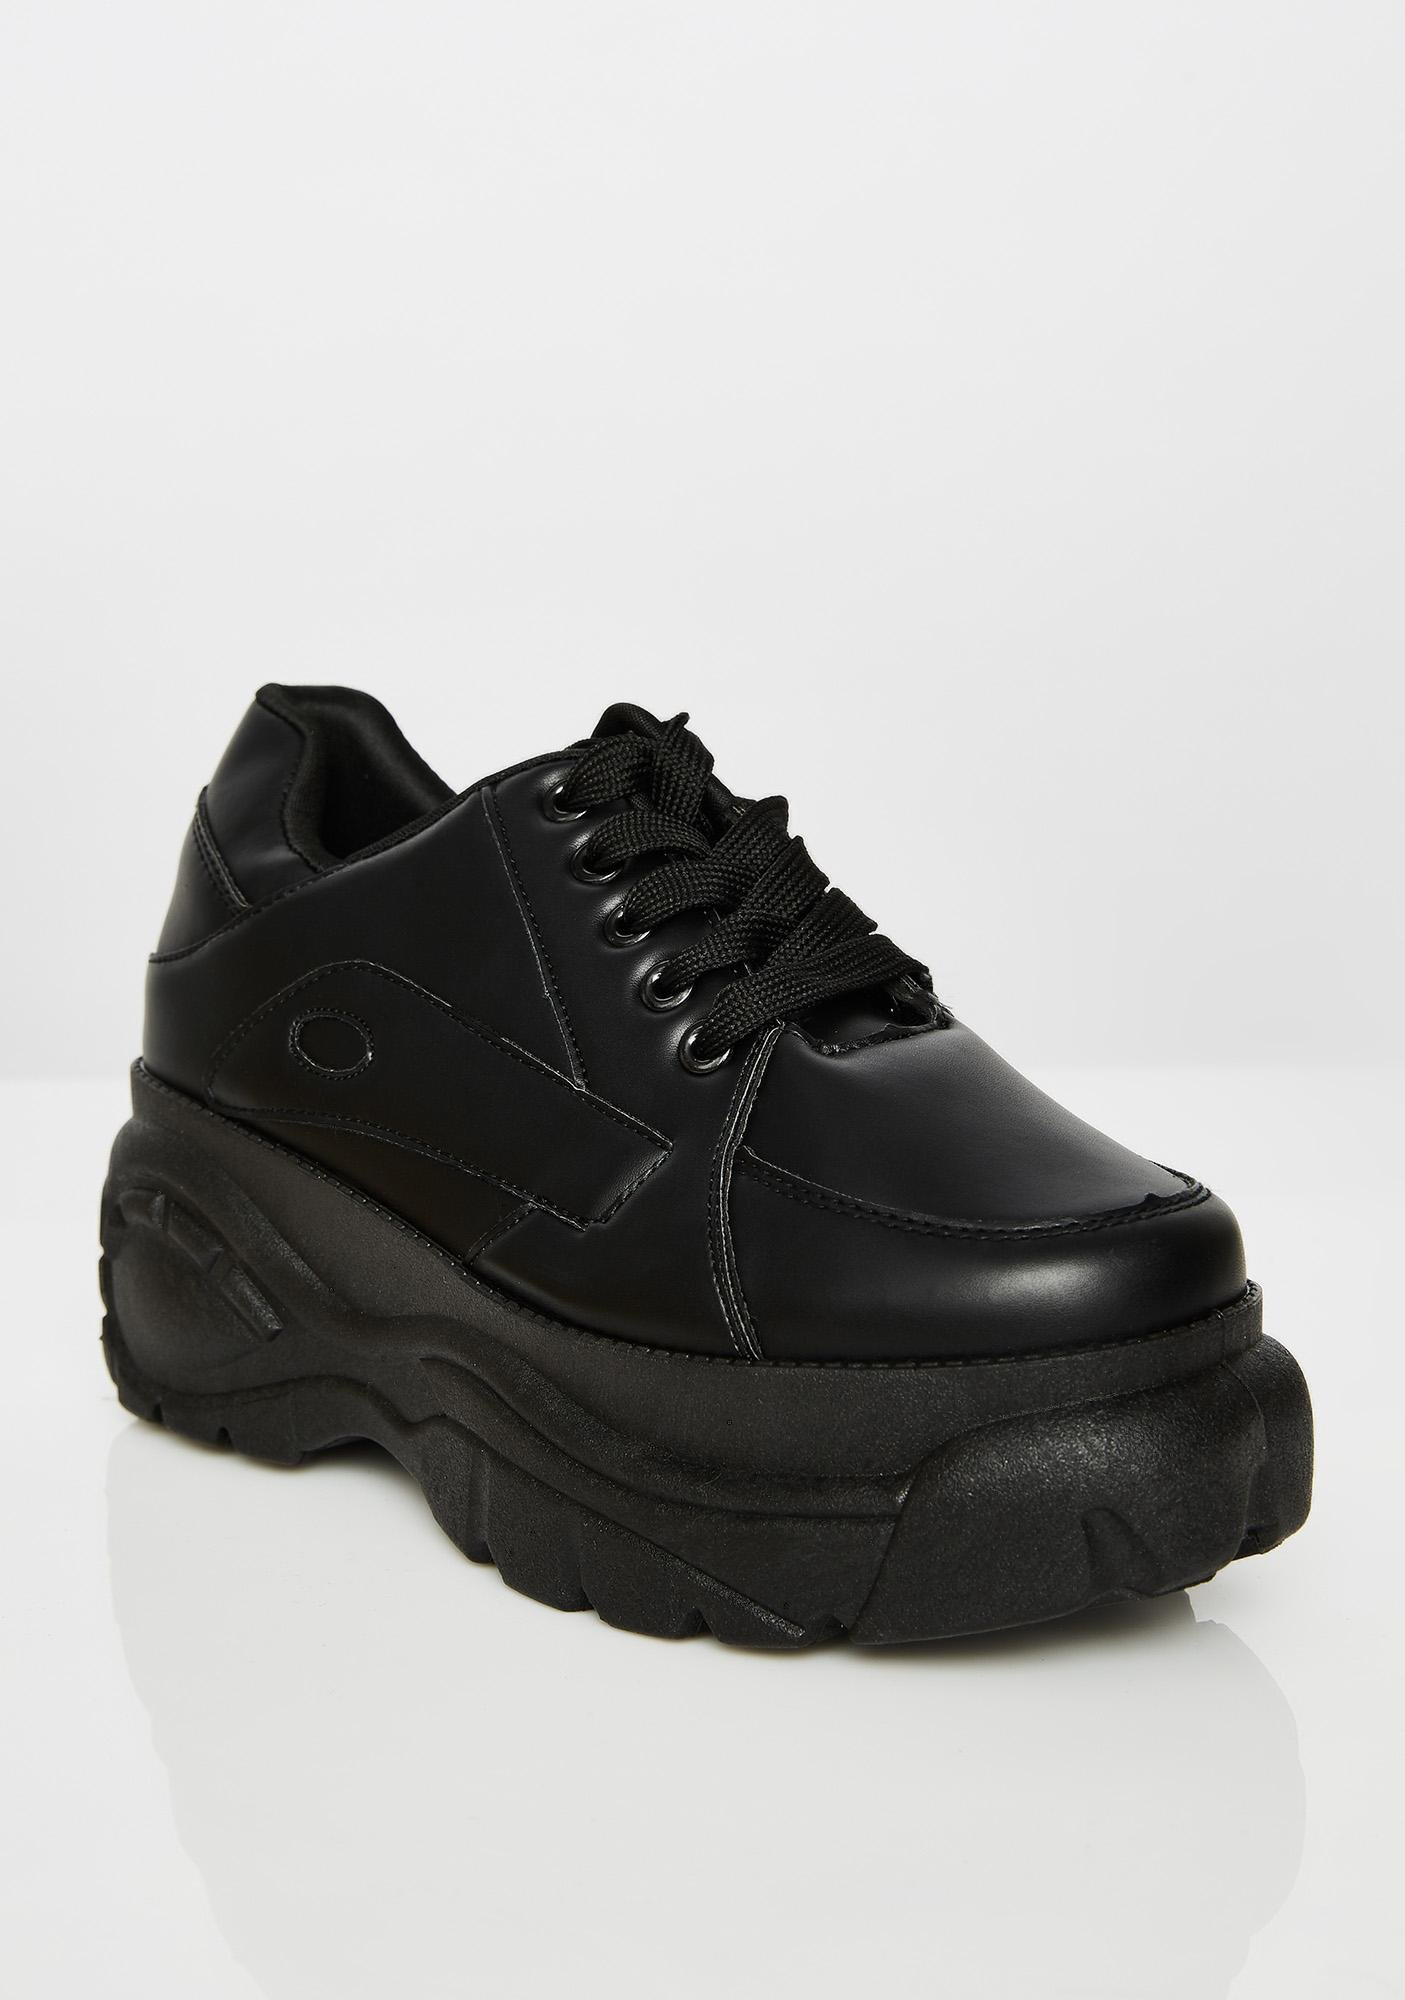 9c568f80dc8 Midnight Link In Bio Chunky Sneakers